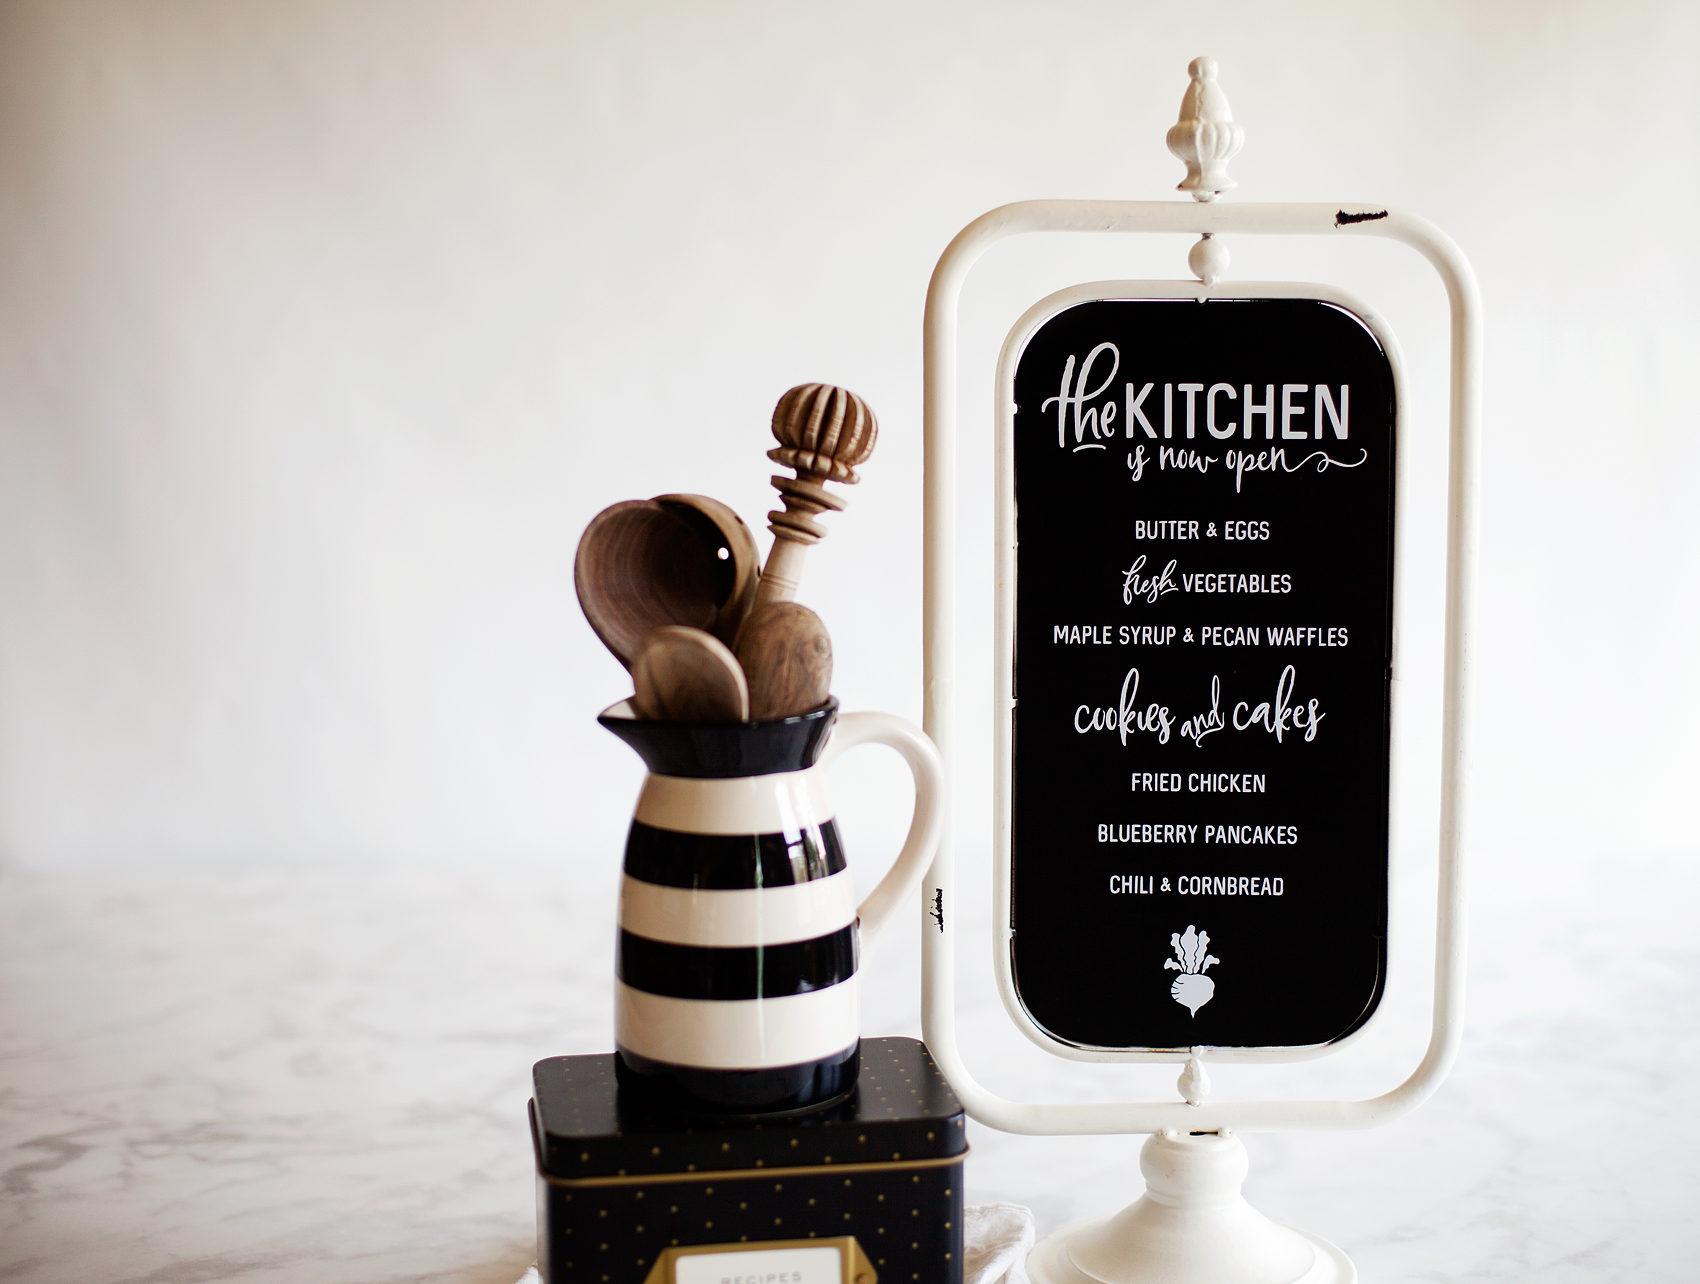 "How to Apply Vinyl Have you always wanted to create beautiful vinyl signs but, can't quite get the hang of applying vinyl? Look no further, I'm sharing my pro tips for how to apply vinyl to create beautiful vinyl signs like this, ""The Kitchen is Now Open Sign"" with menu from WhipperBerry."